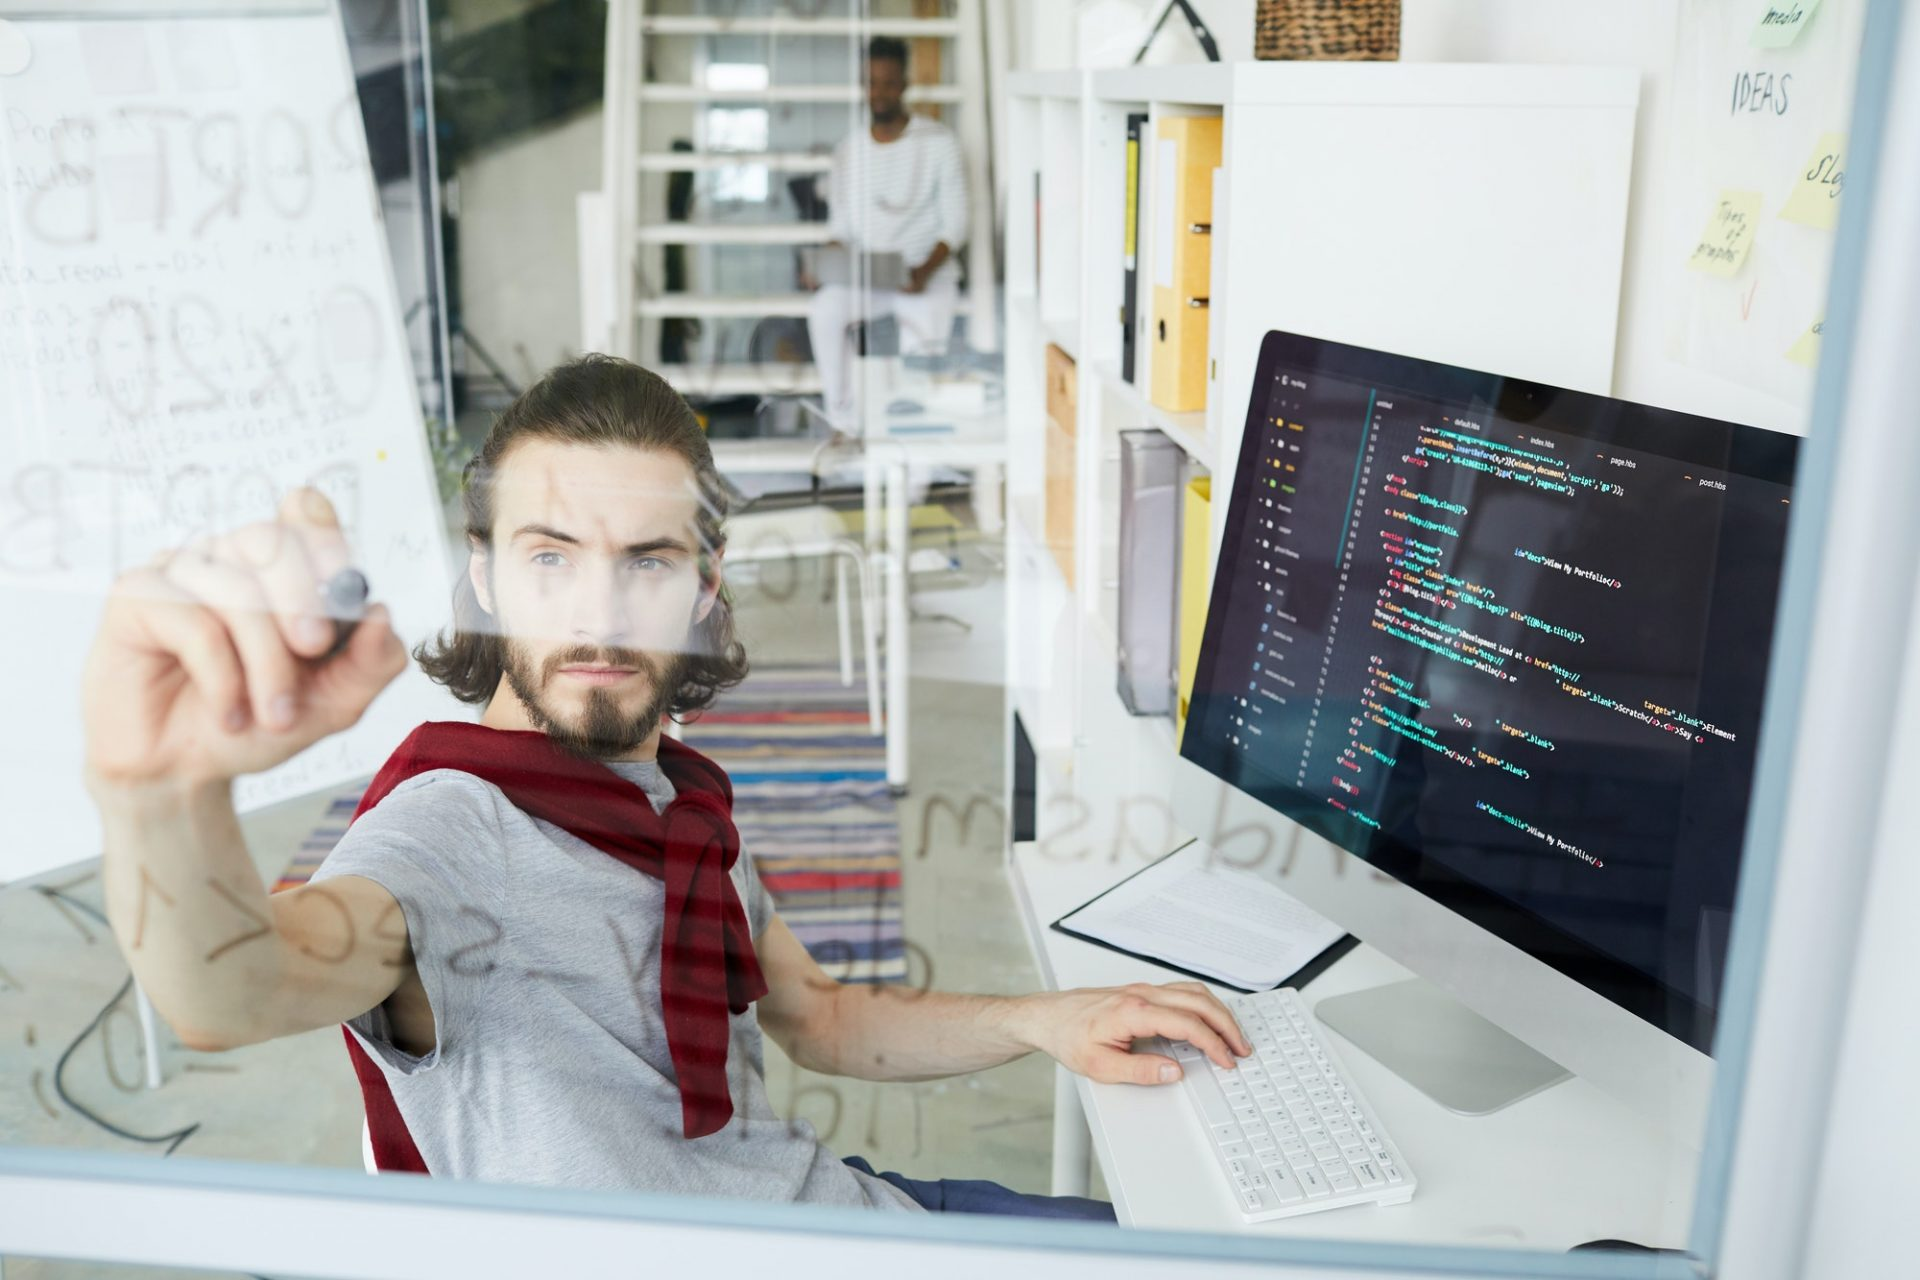 Creative hipster coder working with programming language